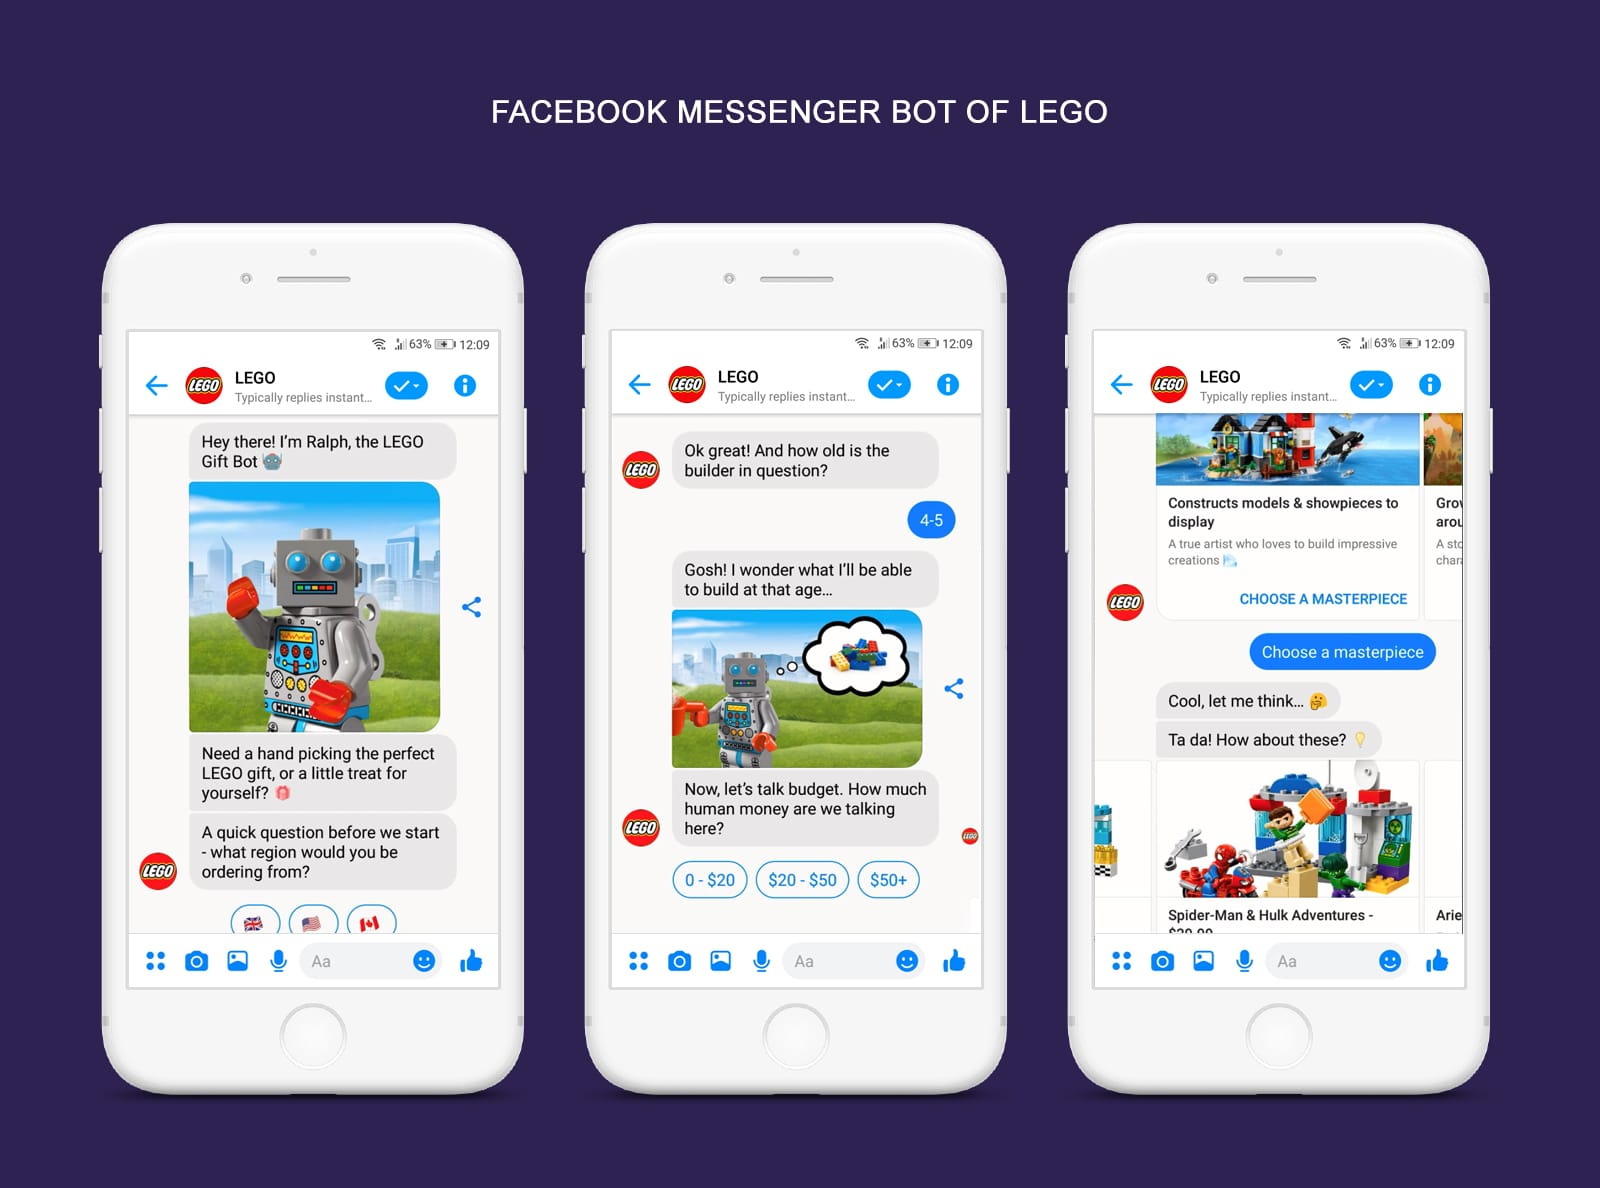 Facebook Messenger Bot of LEGO